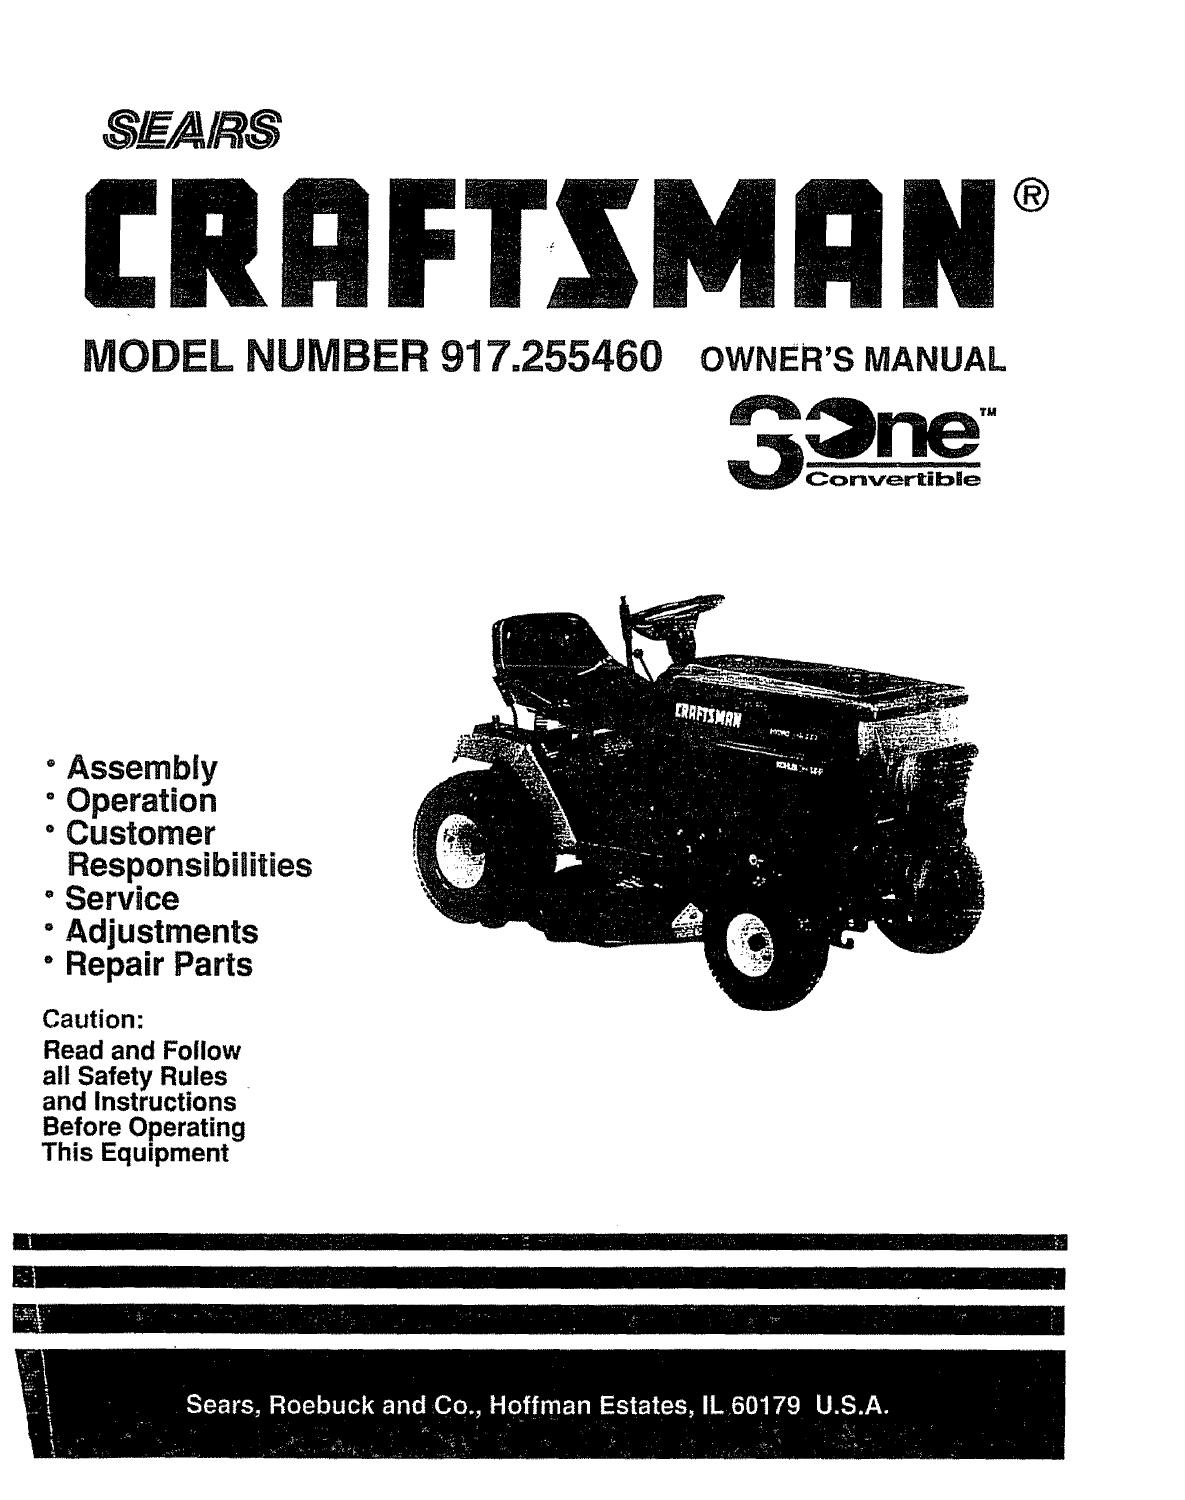 SEARS Craftsman Lawn Mower - Model 917 255460 by glsense - issuu